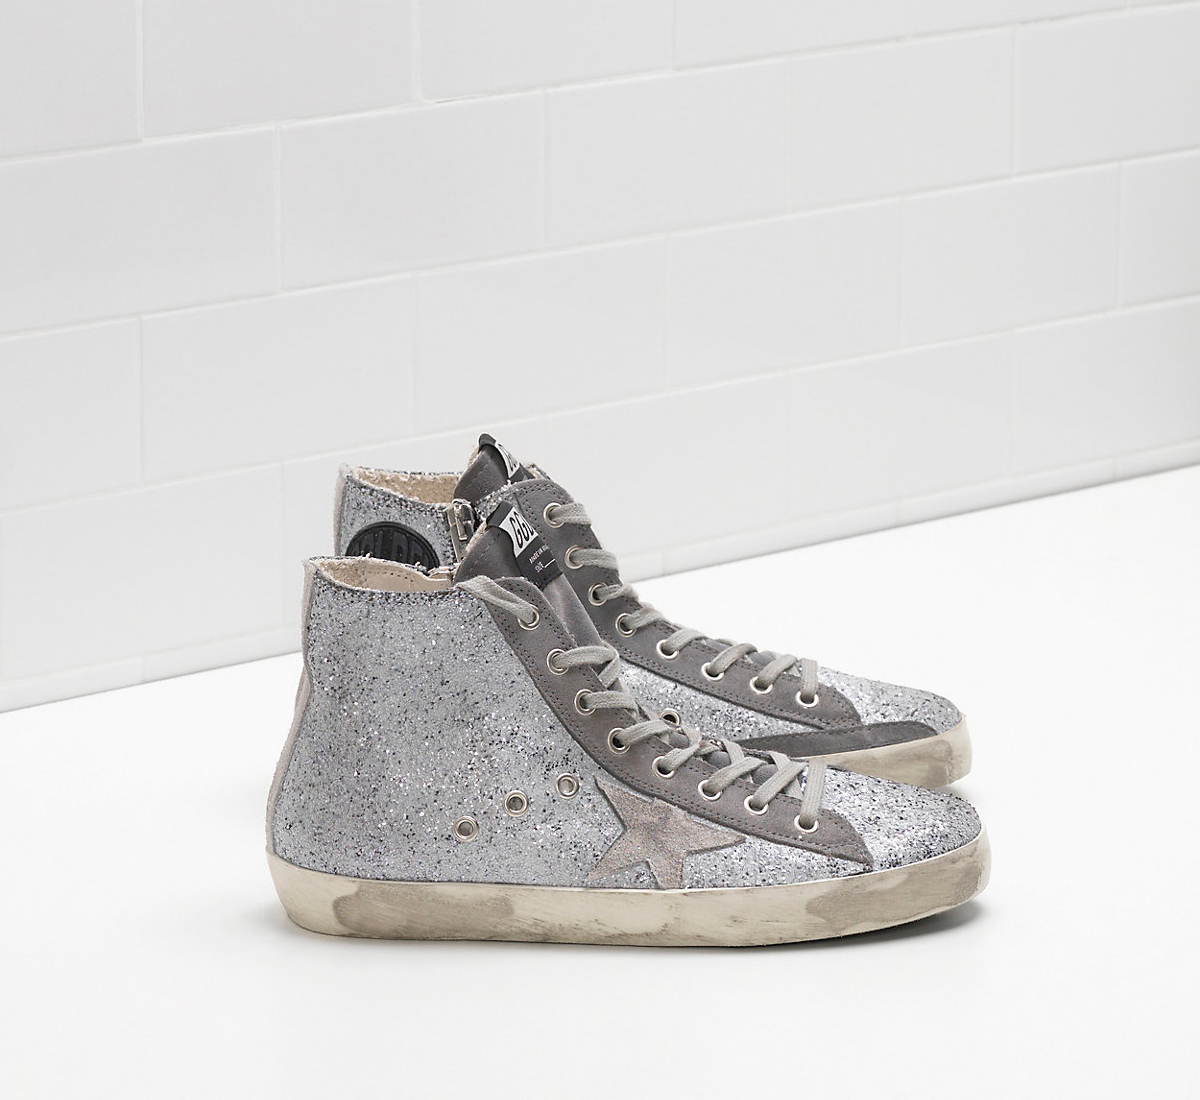 Golden Goose DB Francy Sneakers In Slightly Matte Effect Glitter-coated Calf Leather With Suede Star